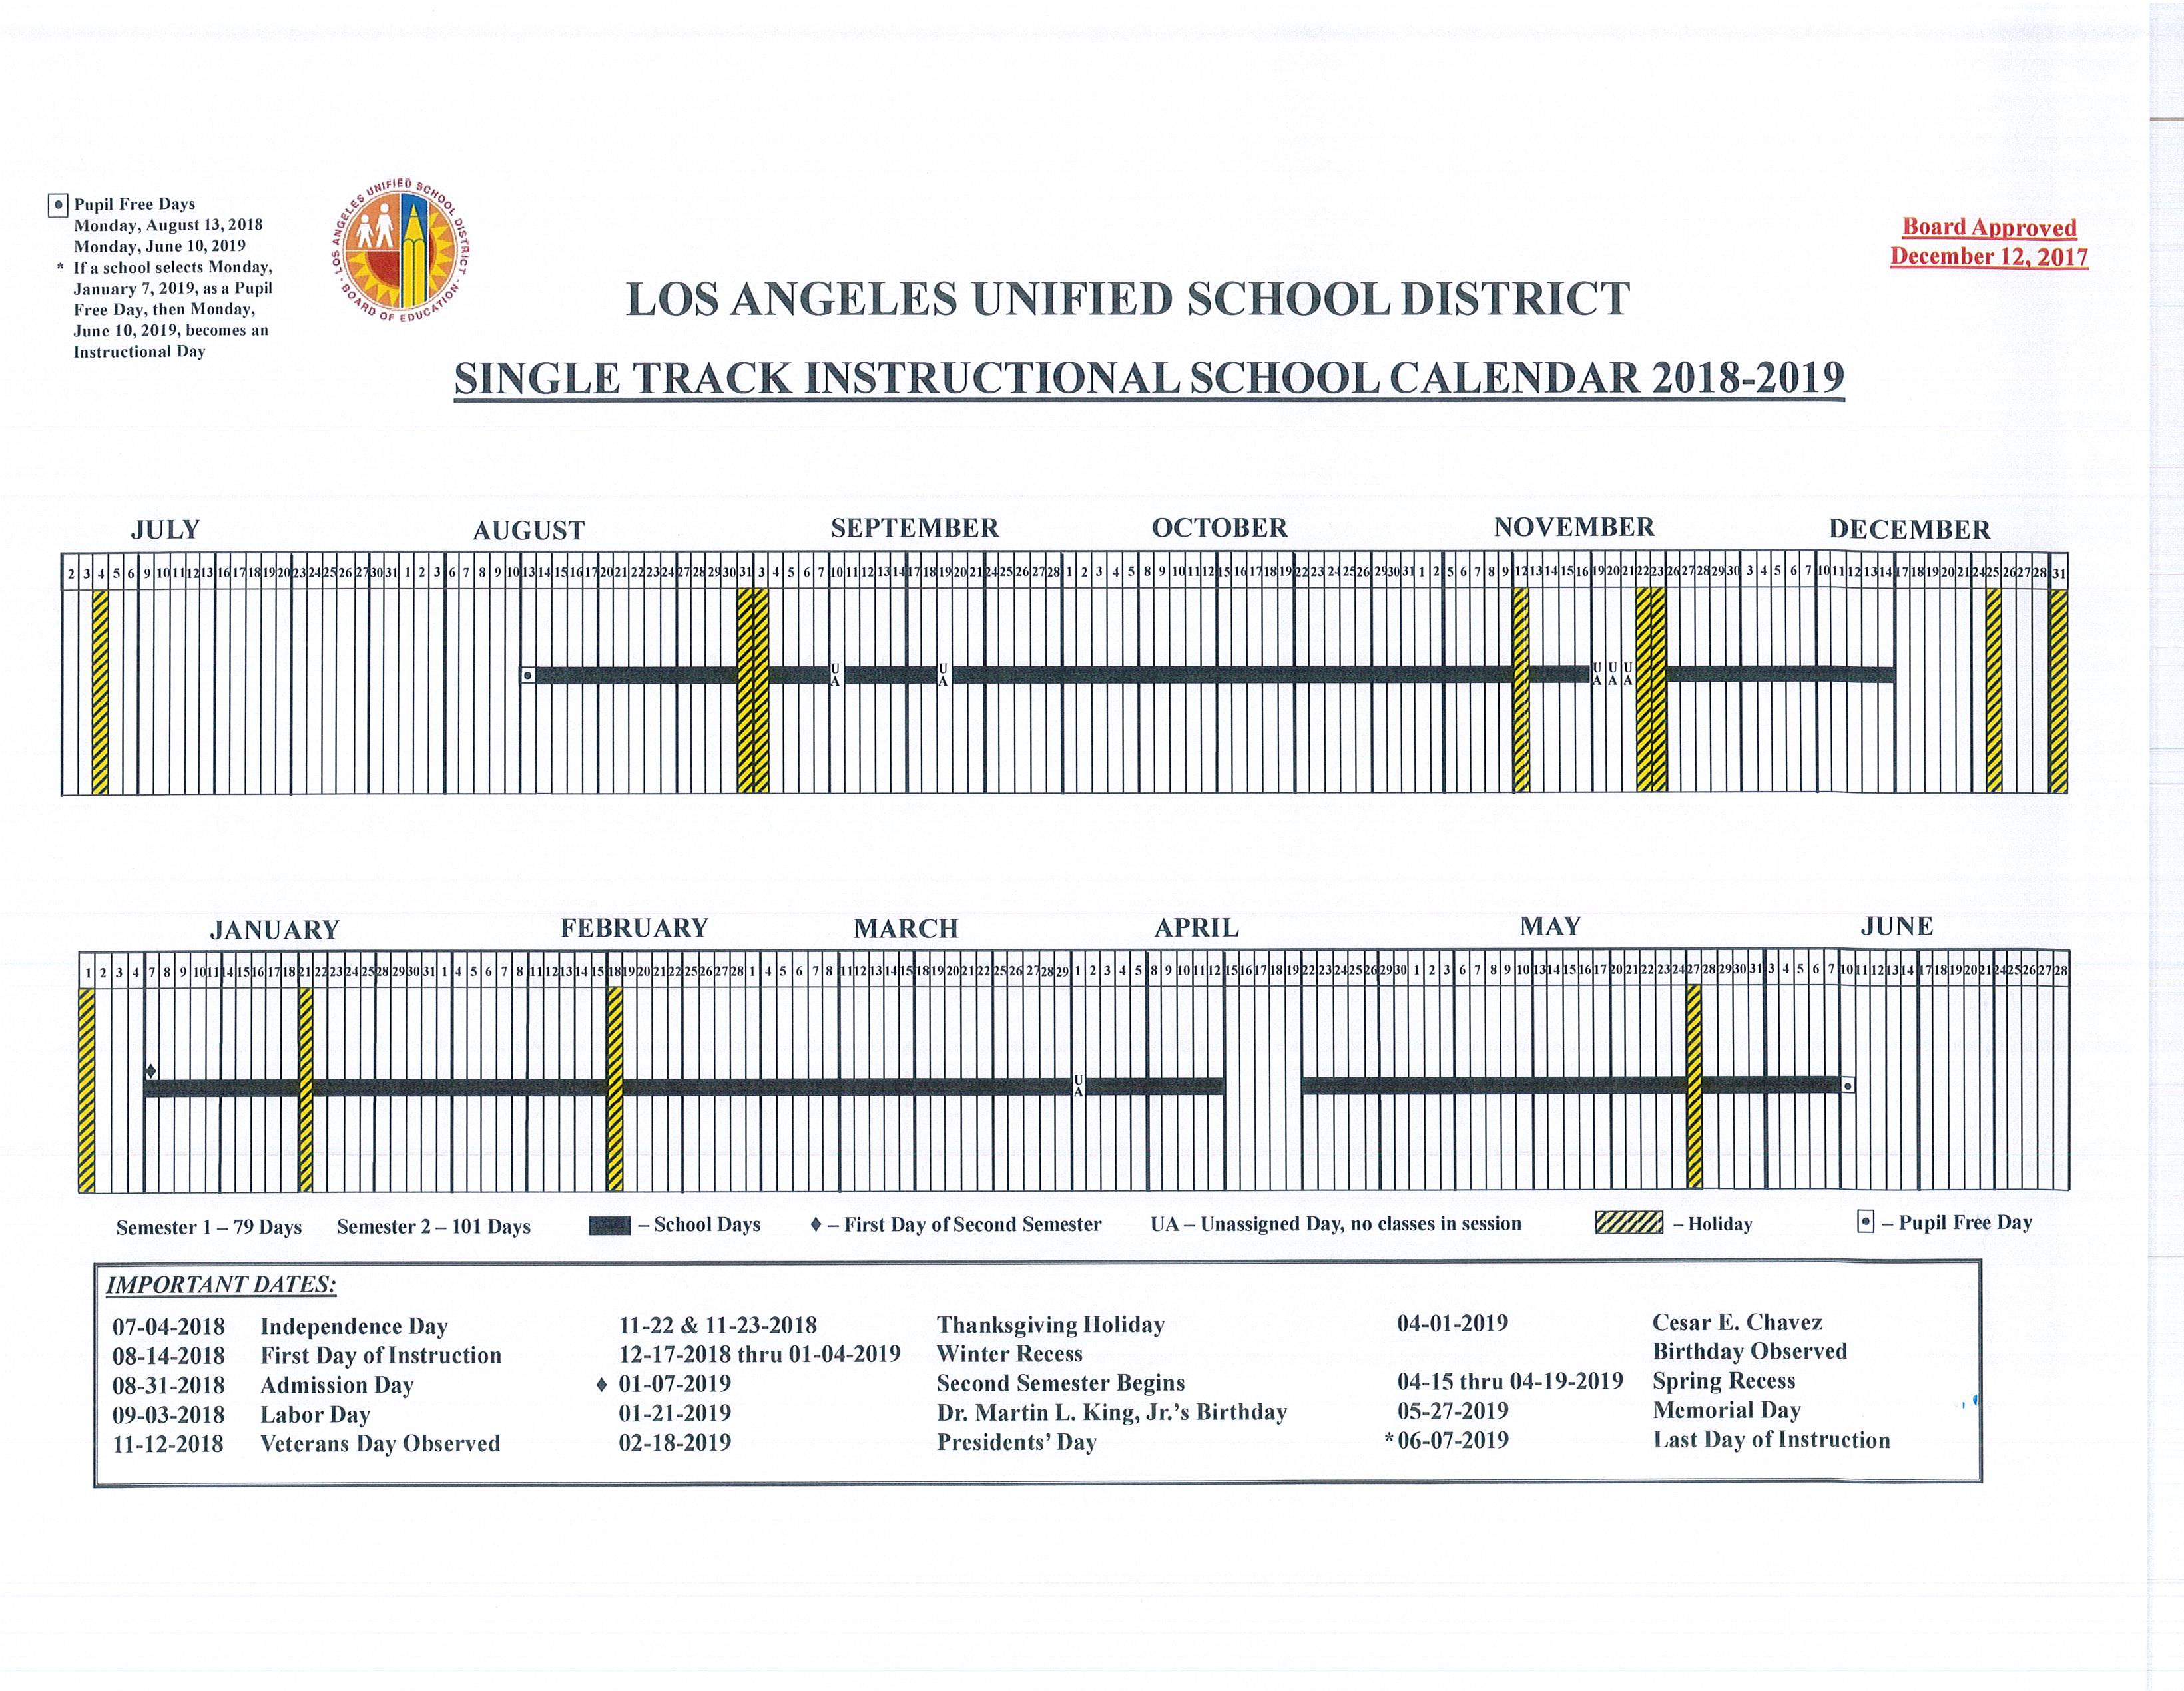 Instructional School Calendar 2018-2019